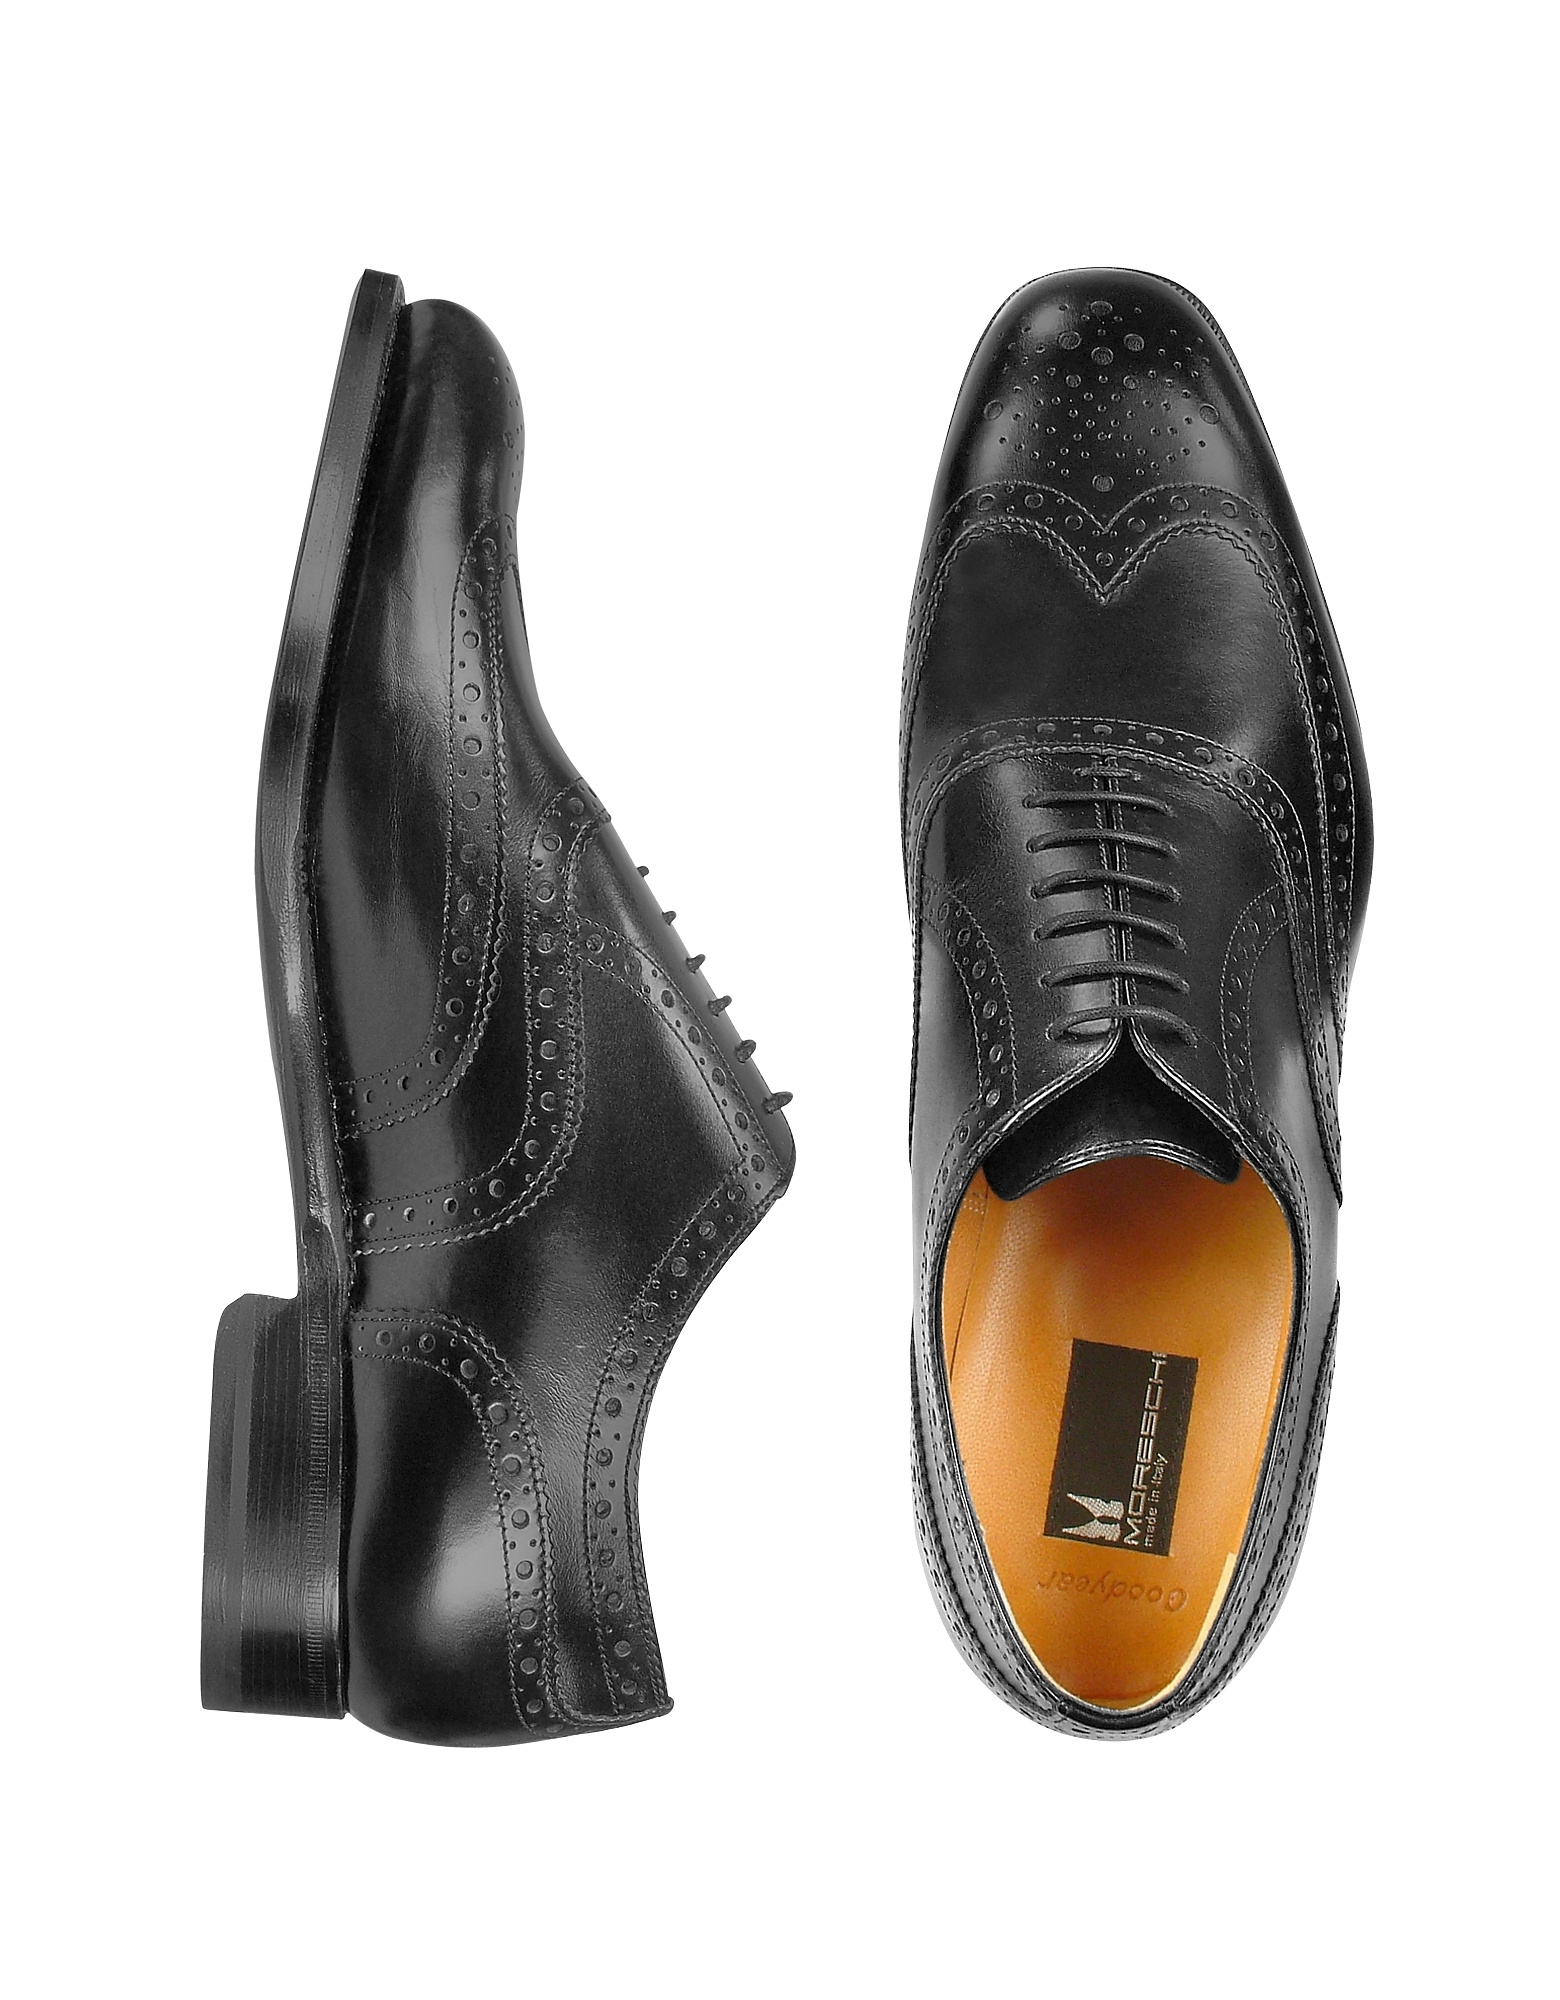 Oxford - Black Calfskin Wingtip Shoes